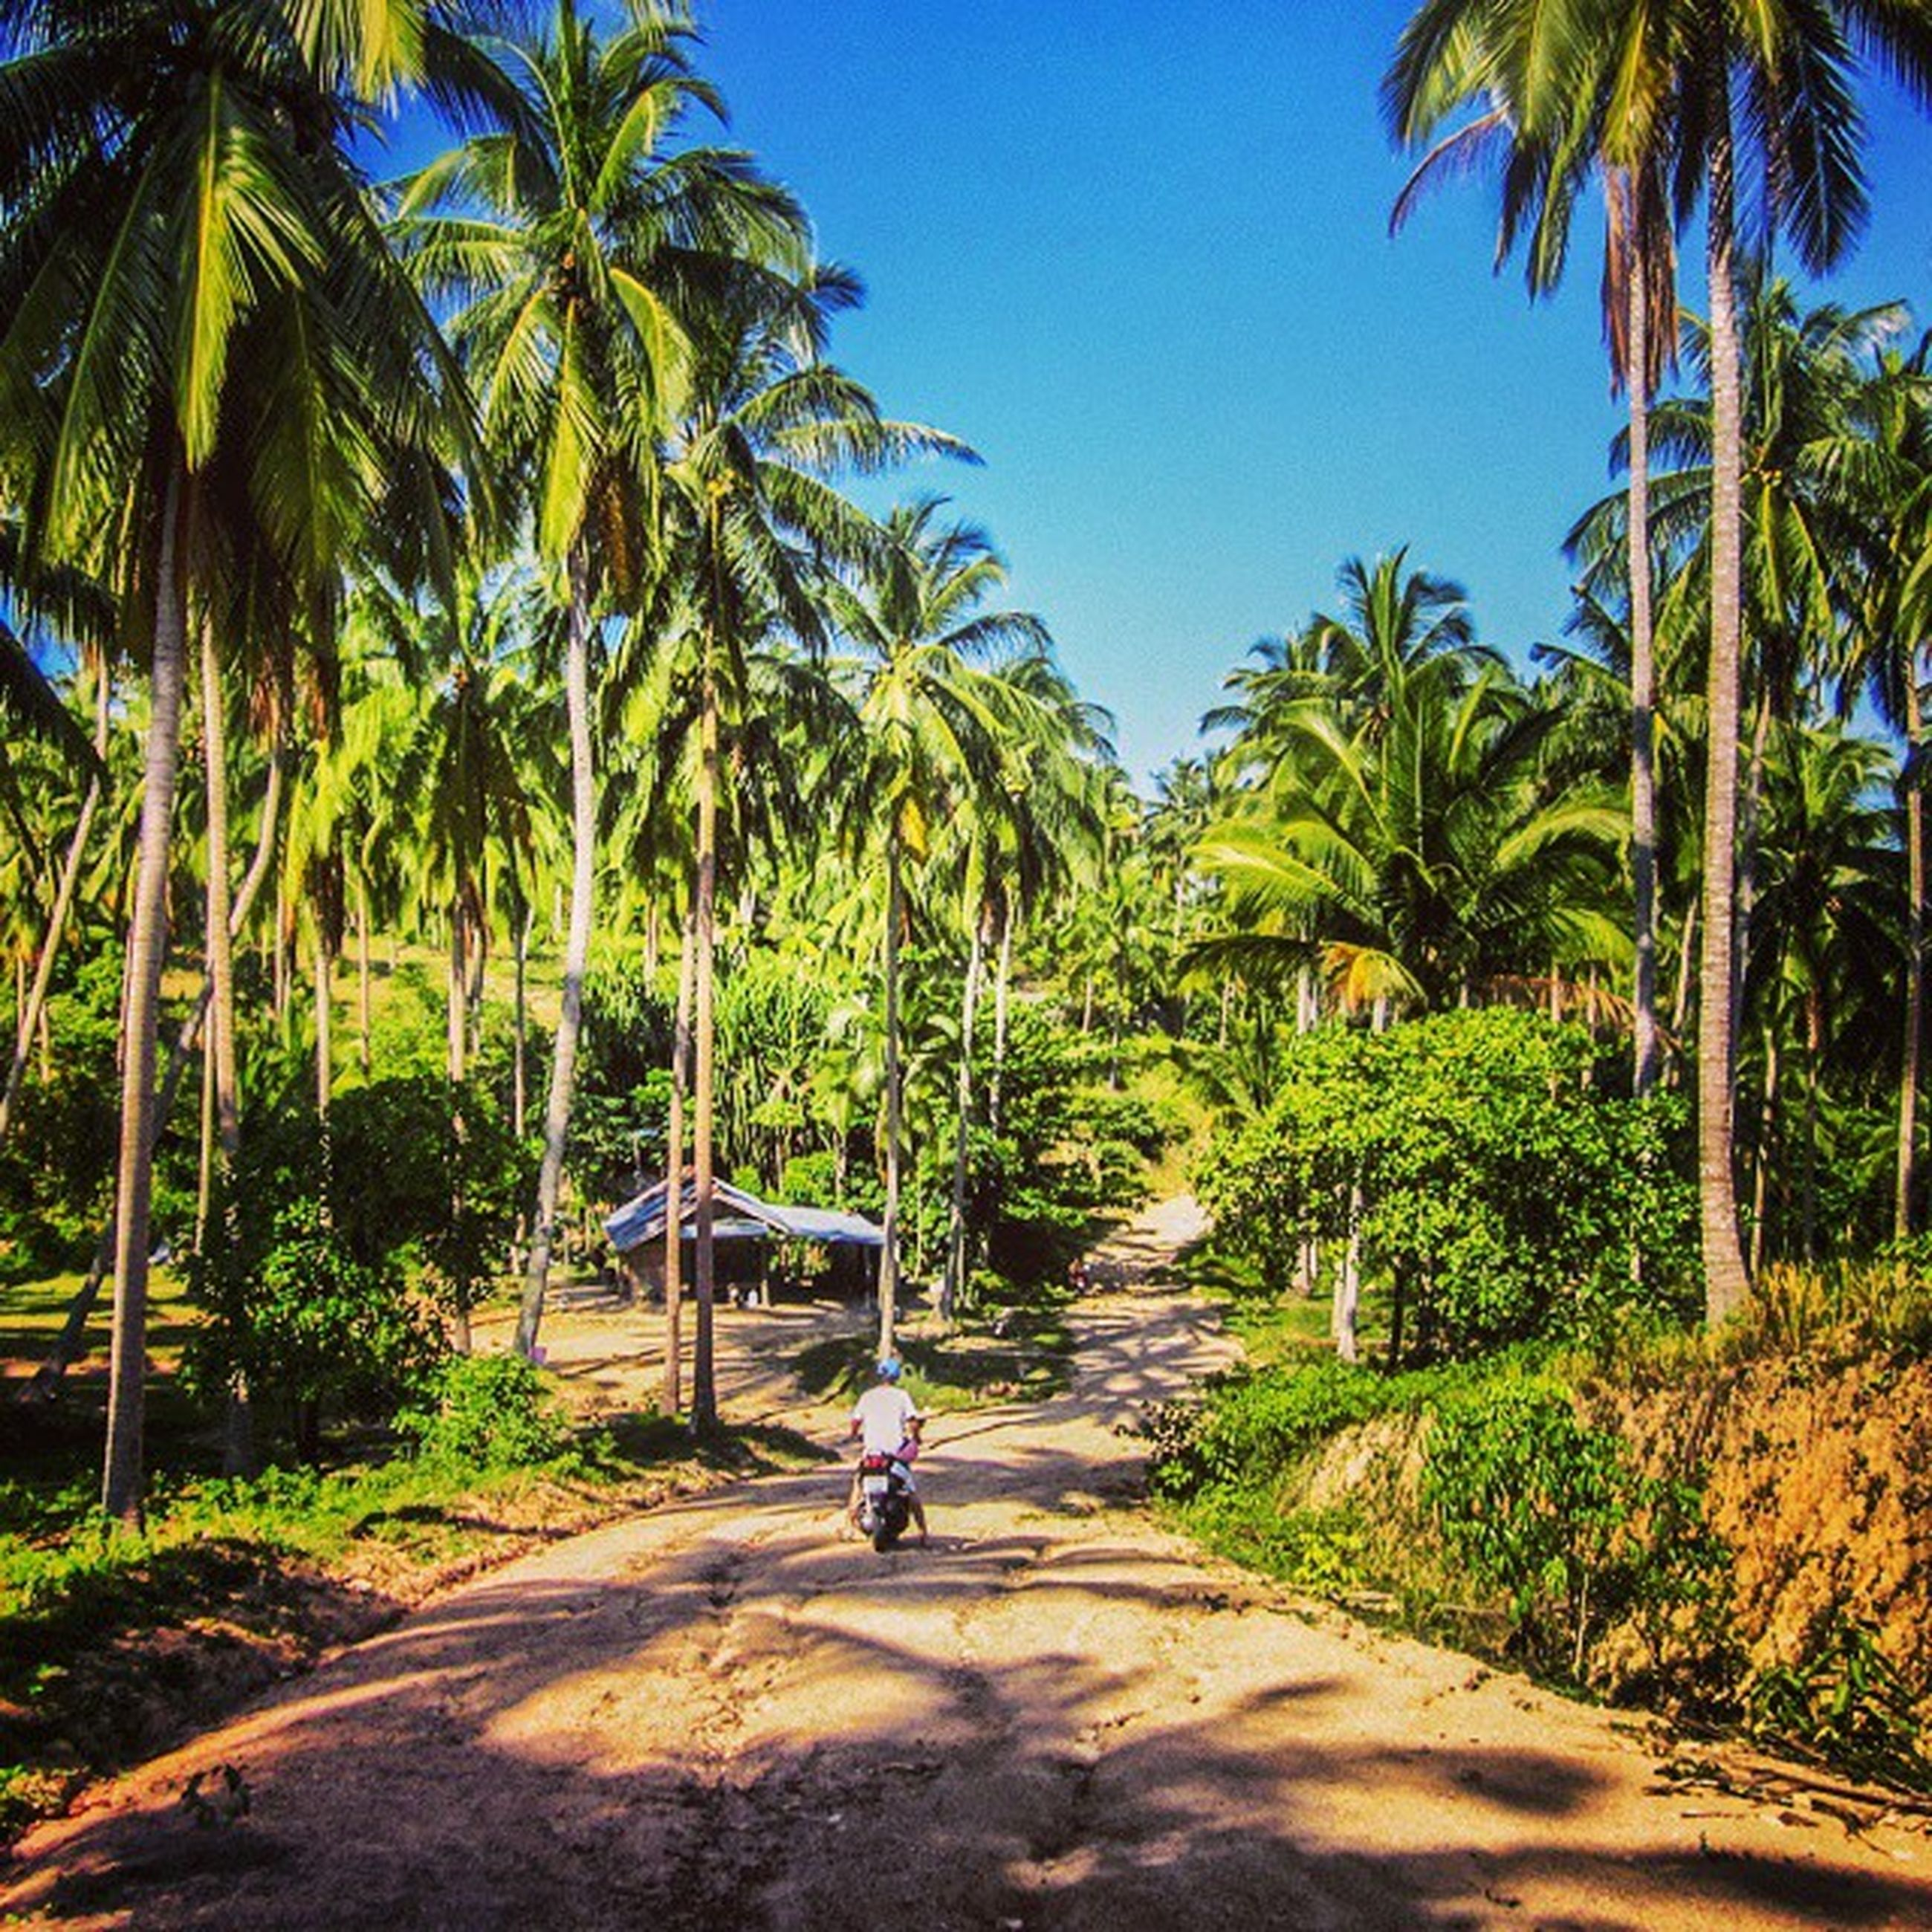 tree, palm tree, leisure activity, lifestyles, growth, men, transportation, green color, full length, nature, tranquility, person, mode of transport, tranquil scene, clear sky, sunlight, travel, beauty in nature